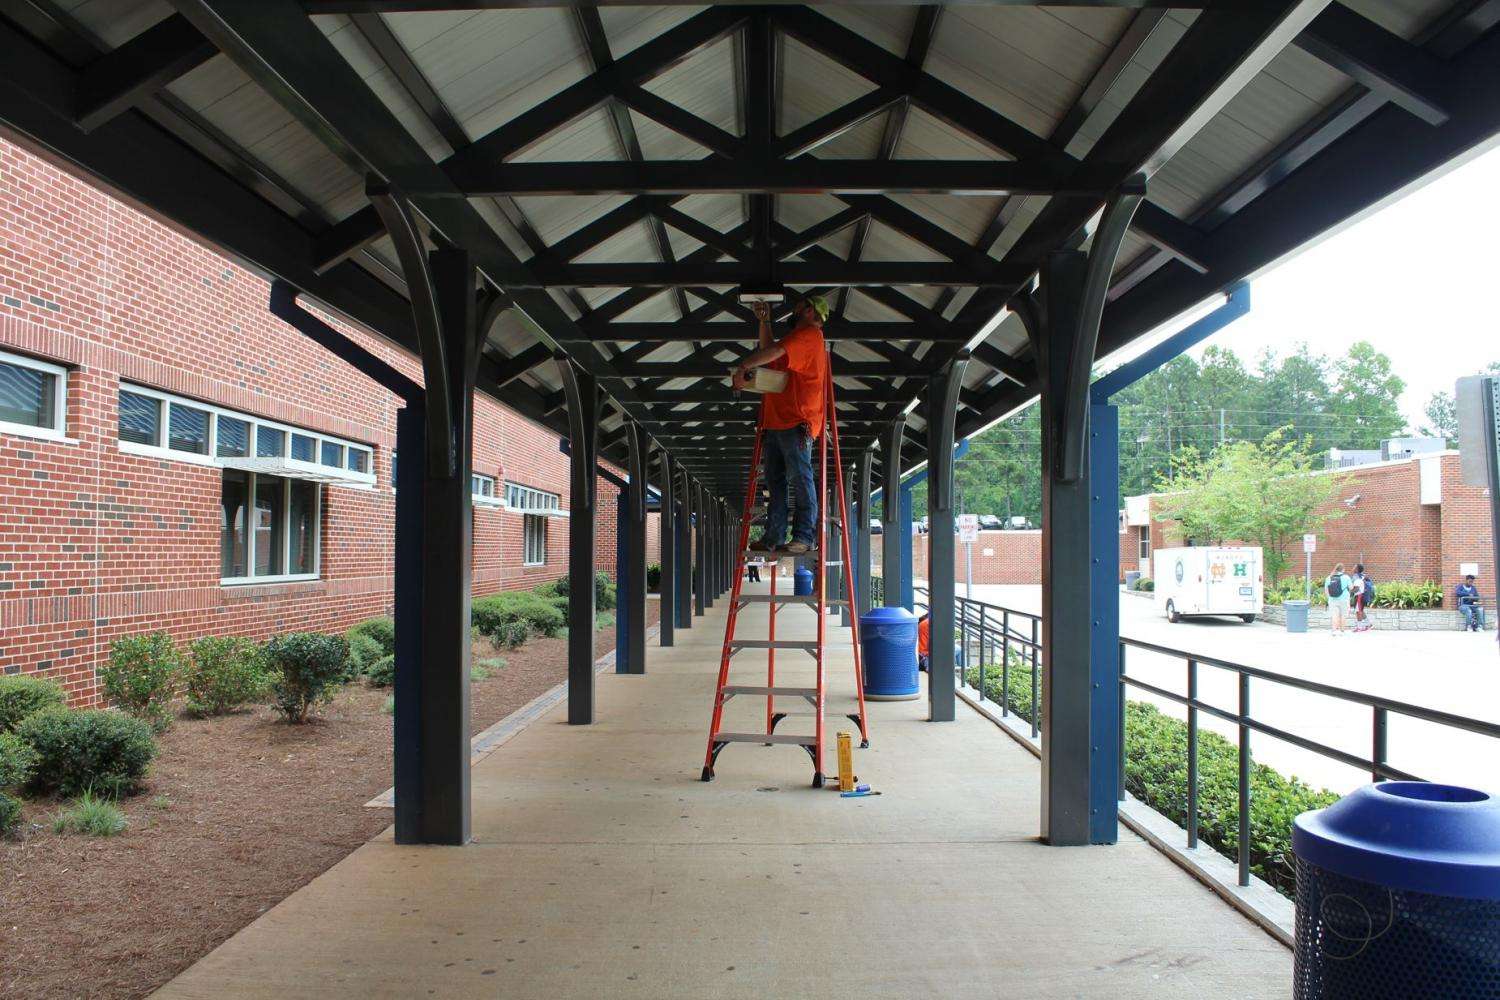 Construction+worker+Trey+Pruitt+replaces+light+bulbs+outside+entrance+of+freshman+academy.+As+he+works%2C+students+try+to+avoid+the+ladder+in+the+middle+of+the+hallway.+%E2%80%9CI+find+the+spot+a+bit+inconvenient%2C+but+at+least+they+are+getting+replaced%2C%E2%80%9D+said+NC+senior+Jordan+Hicks.